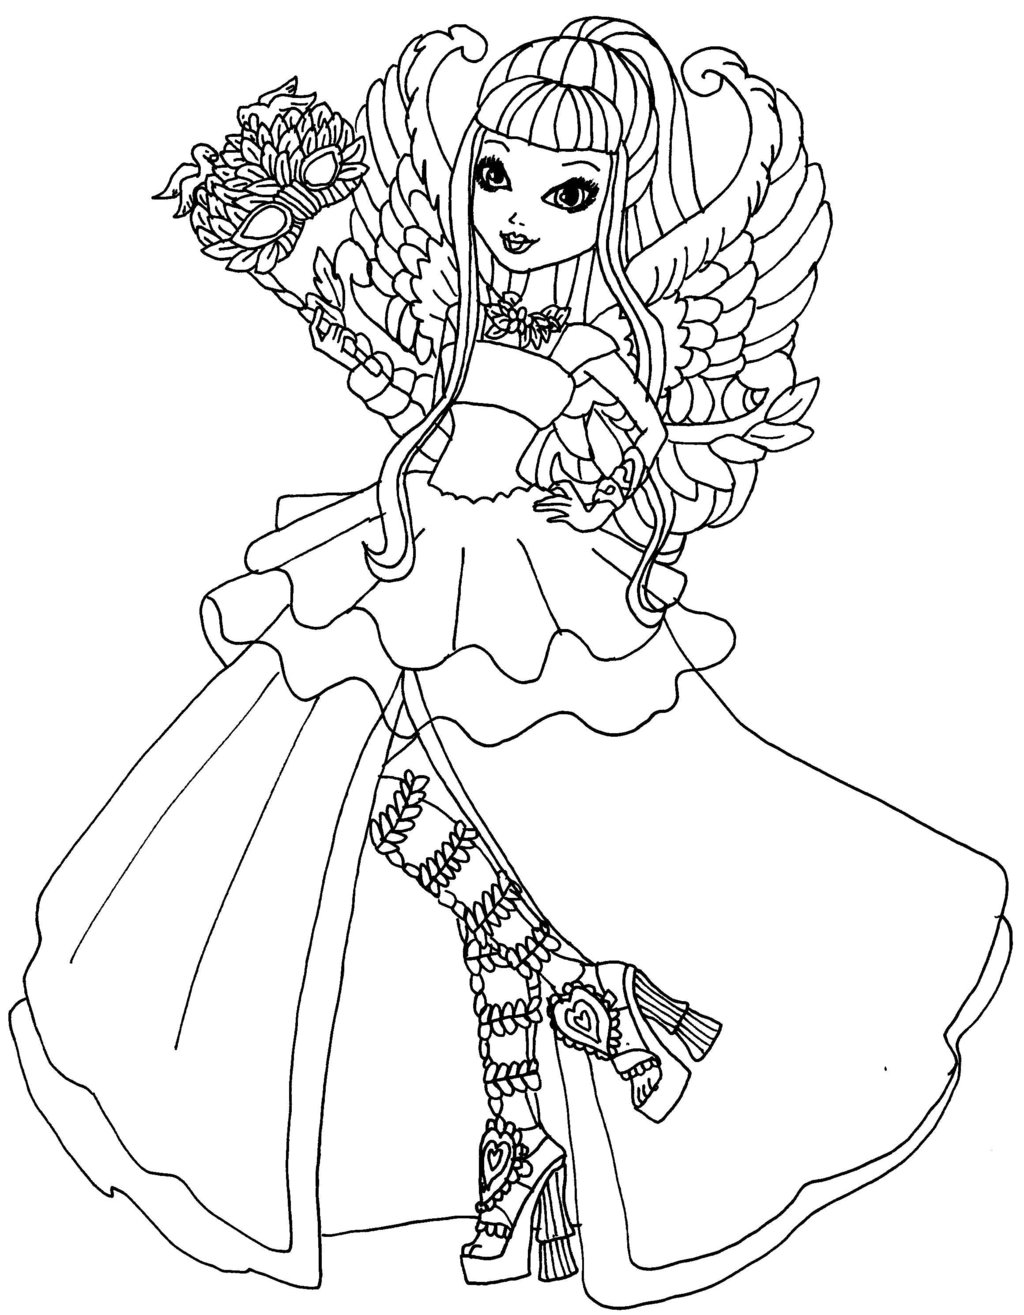 free ever after high coloring pages | Ever After High coloring pages to download and print for free